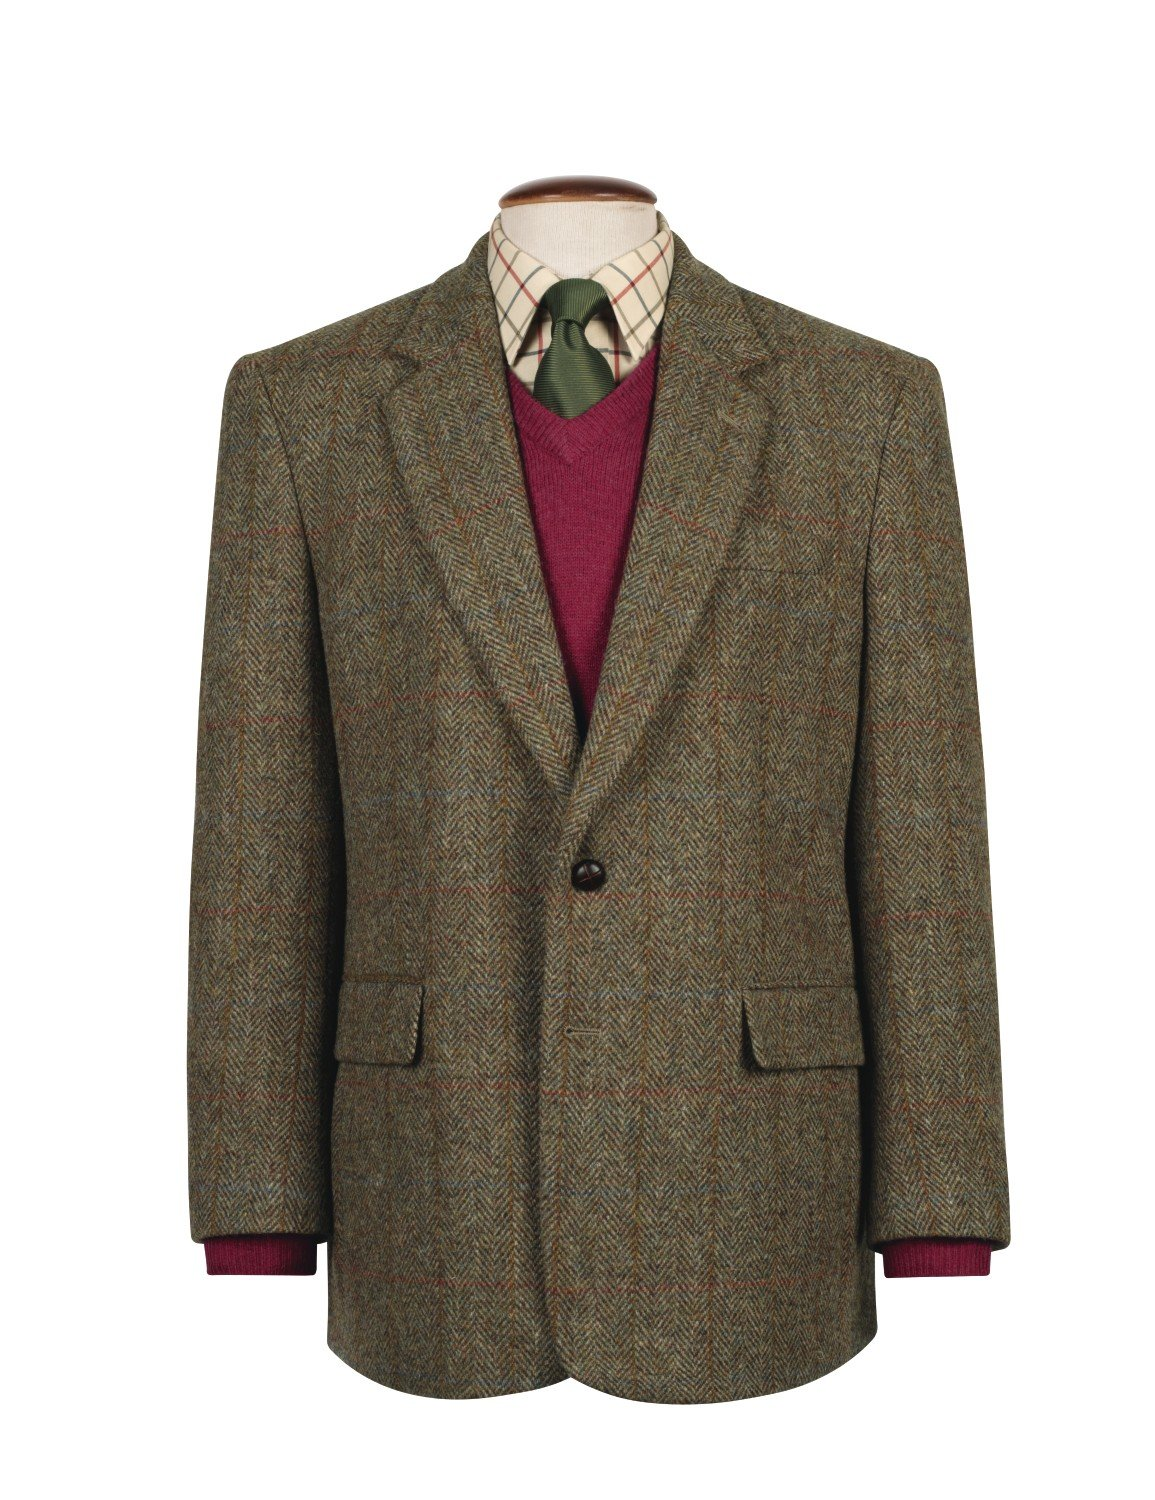 Harris Tweed The Fine Swine Men's Jacket Taransay 40 Long Green mix